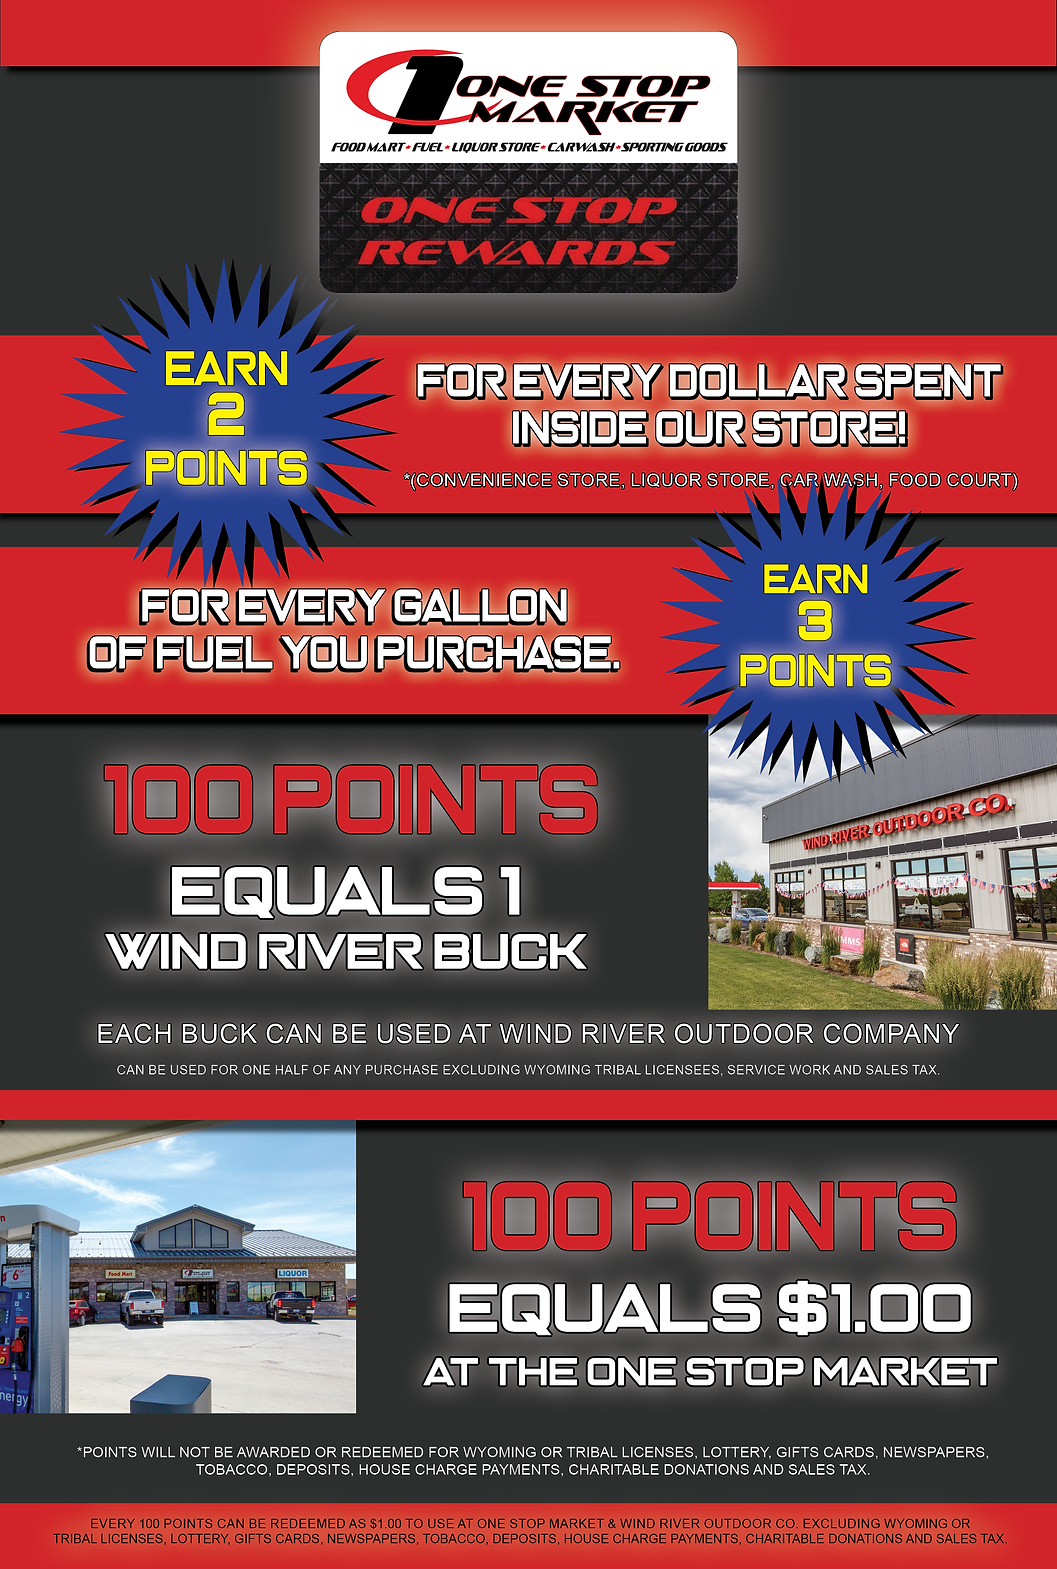 One Stop Market, Food Mart, Liquor Store, Earn 2 points for every dollar spent inside our store! (convenience store liquor store car wash food court, Earn 3 points for every gallon of fuel you purchase) 100 Points equals 1 wind river buck. each buck can be used at wind river outdoor company. Wind River Bucks can be used for any one-half purcahse excluding Wyoming Tribal Licenses, Service work, and sales tax. 100 points also equals $100 at the one stop market. Points will not be awarded or redeemed for Wyoming or Tribal Licenses, Lottery, Gift Cards, Newspapers, Tobacco, Deposits, House Charge Payments, Charitable Donations and sales tax. Every 100 points can be redeemed as $1.00 to use at one stop market and Wind River Outdoor Compant Exclusing Wyoming or Tribal Licenses, Lottery, Gift Cards, Newspapers, Tobacco, Deposit, House Charge Payments, Charitable Donations and Sales Tax. IT'S THE FASTEST WAY TO EARN REWARDS ON EVERY PURCHASE YOU MAKE! One Stop Market rewards is a loyalty prgm.